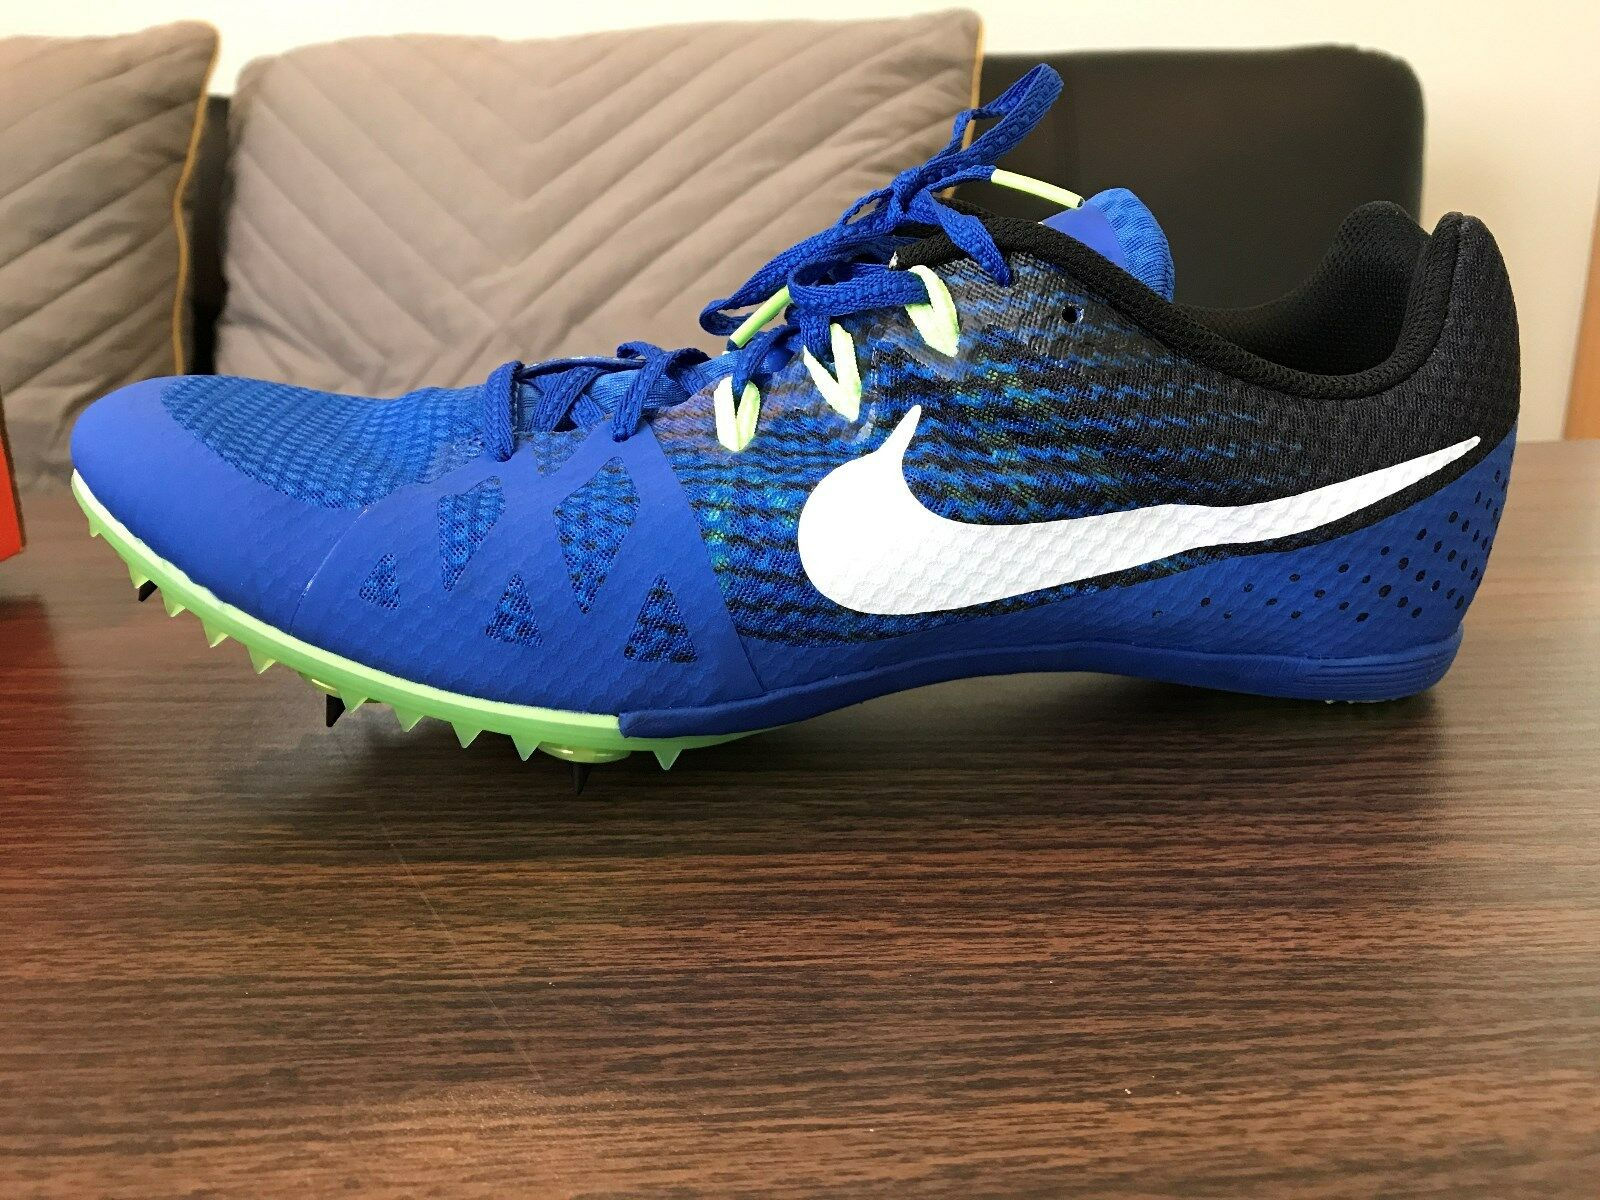 997762b349c Nike Zoom Rival M 8 Track Field Sprint Spikes Shoes Size 13 Blue ...